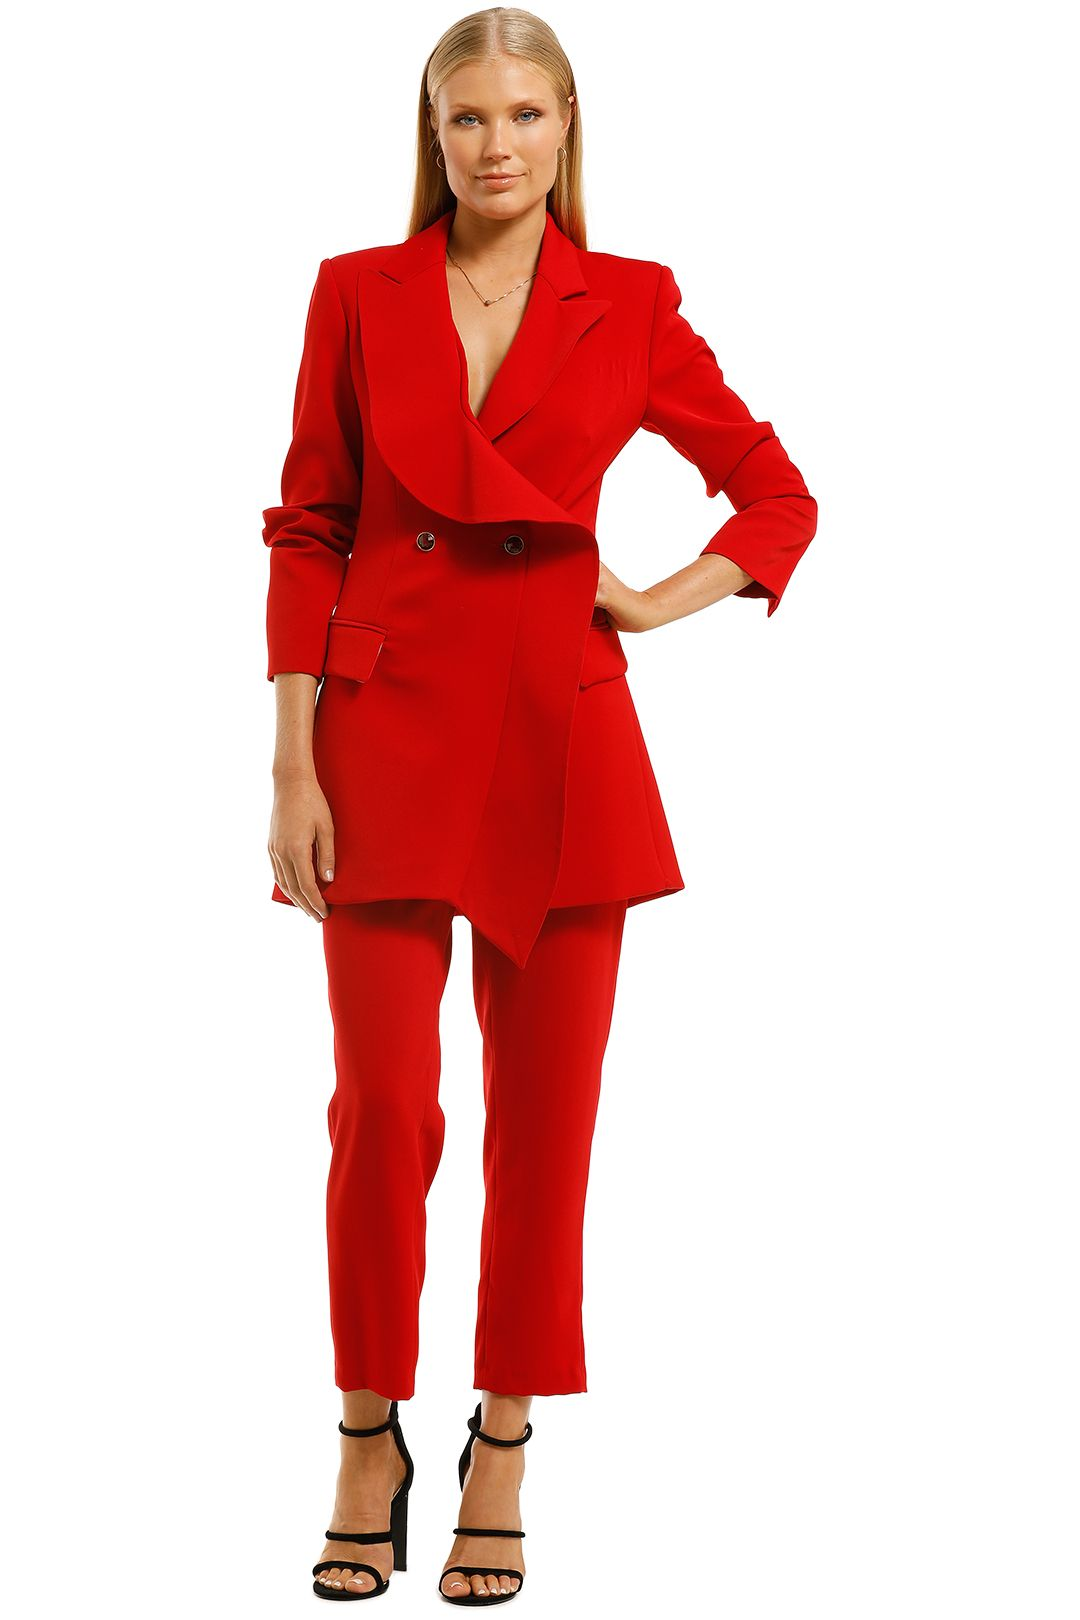 Trelise-Cooper-Chasing-Waterfalls-Jacket-and-Strut-About-Town-Trouser-Set-Front